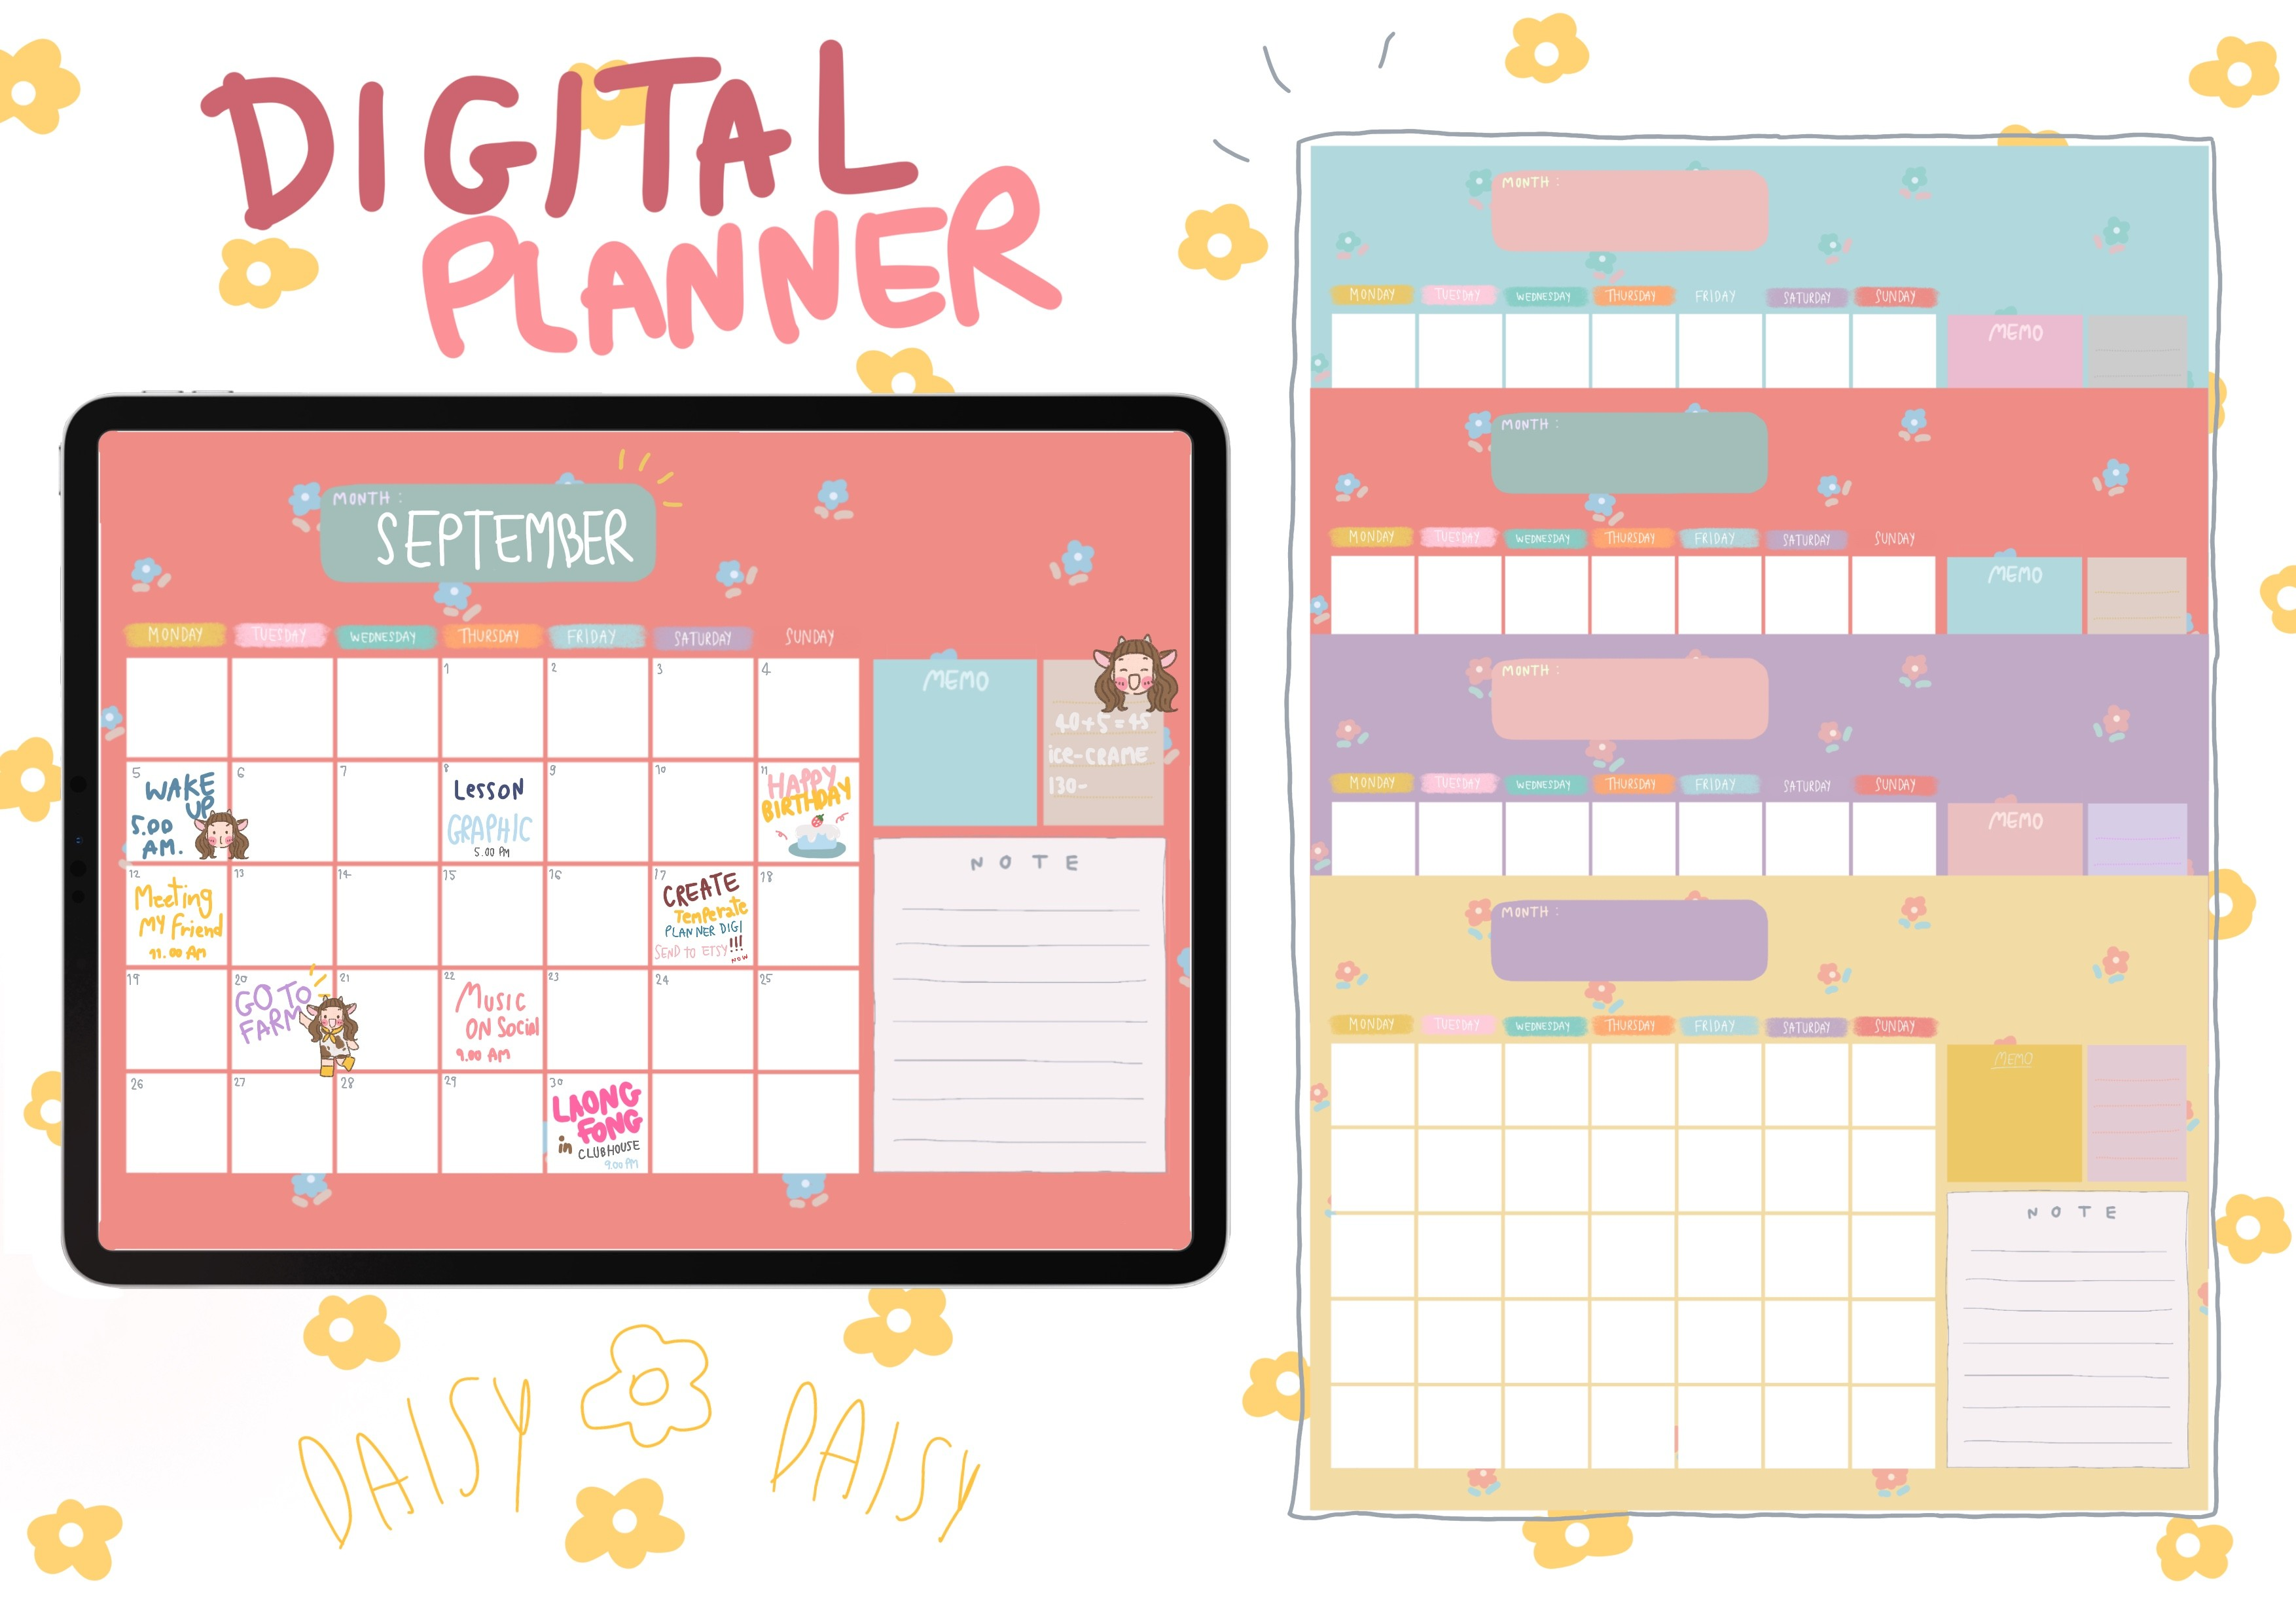 Digital Planner Template with flowers